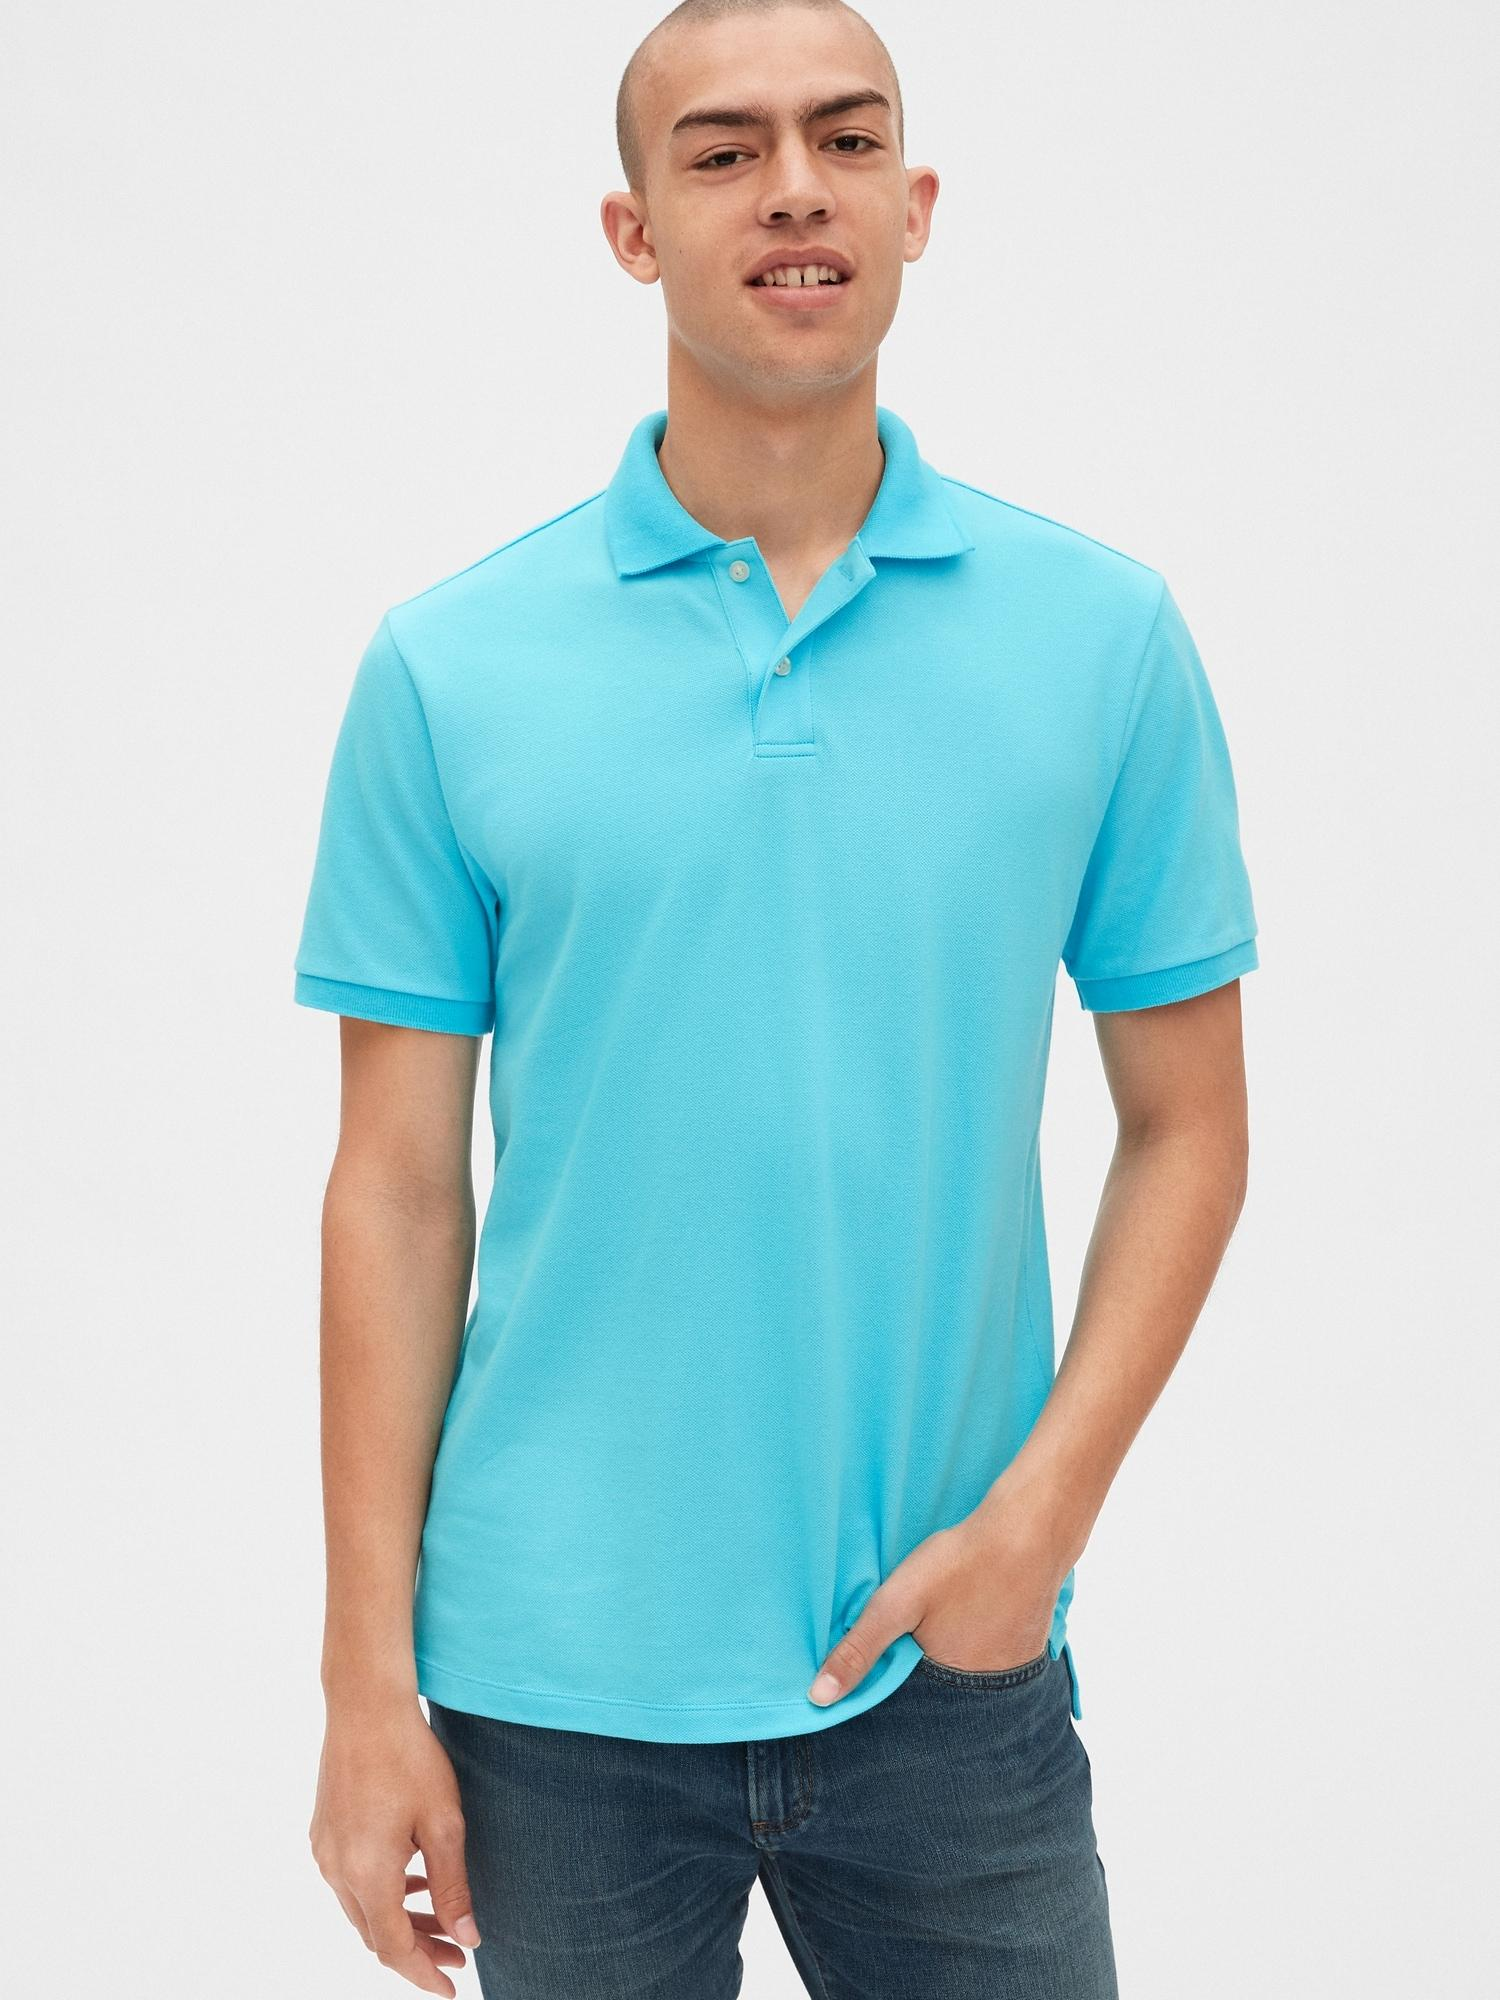 db8885b34 Lyst - Gap All Day Pique Polo Shirt in Blue for Men